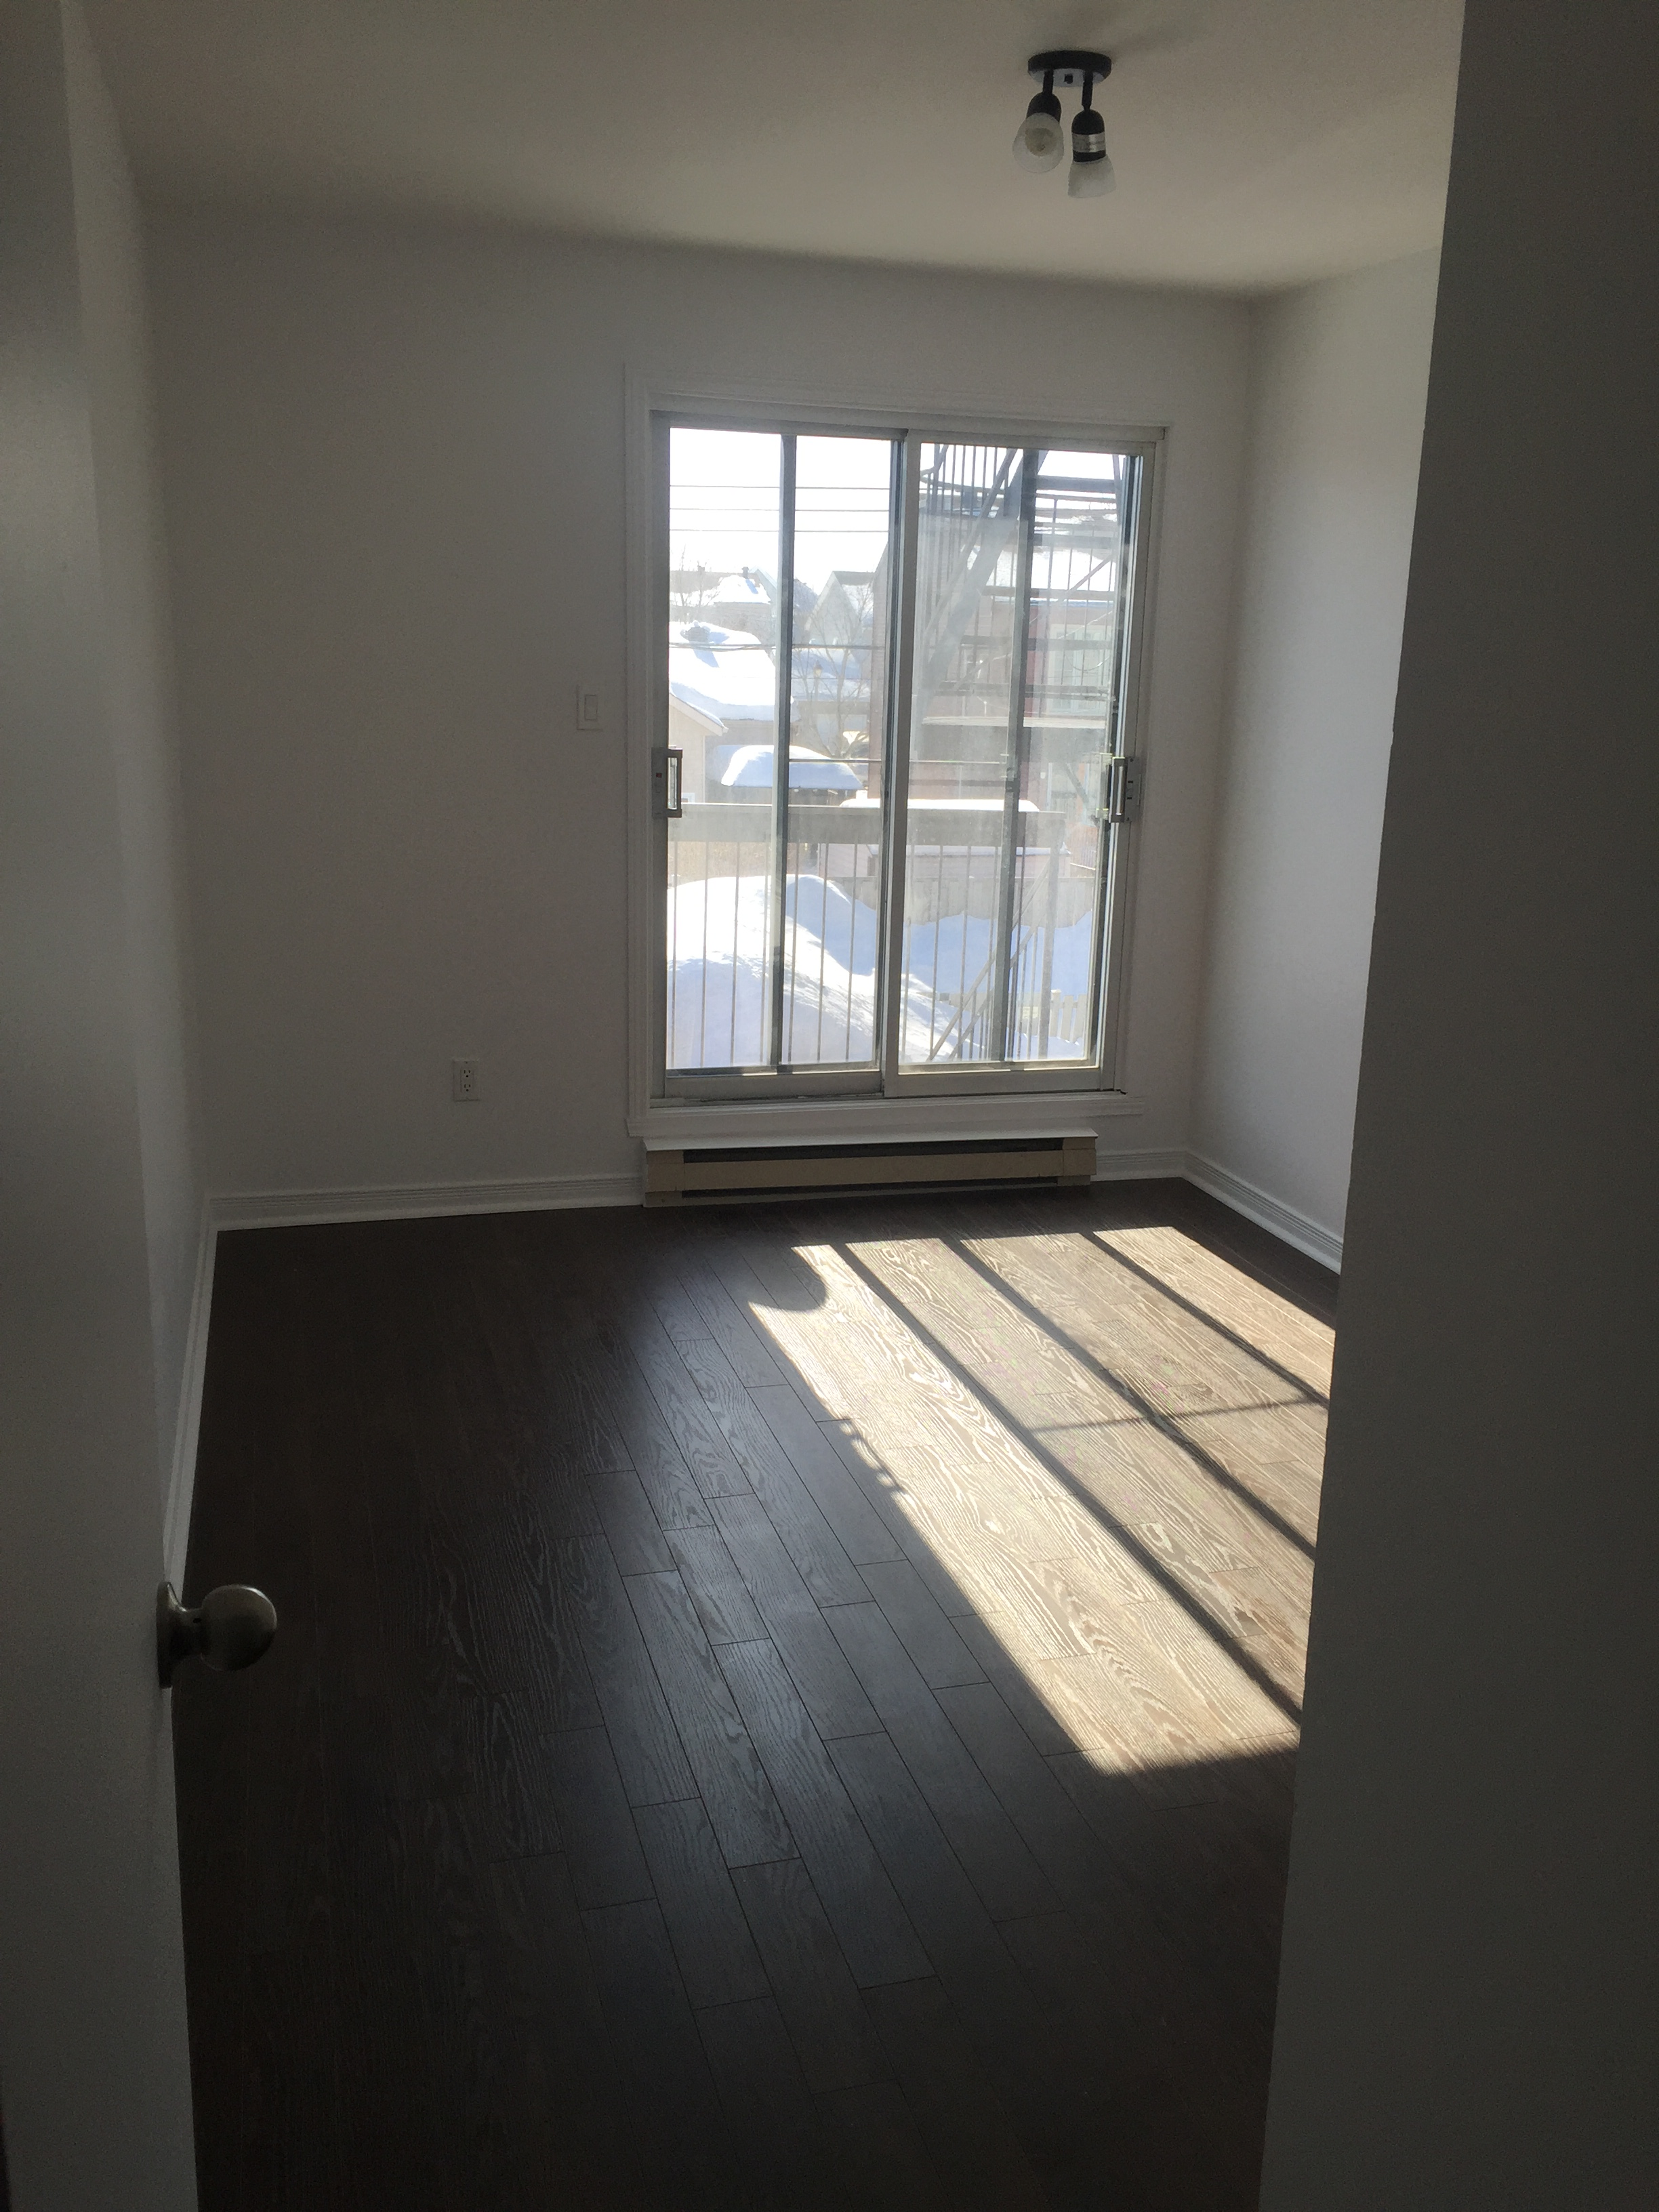 2 bedroom Apartments for rent in Pierrefonds-Roxboro at 18045-18125 Pierrefonds Boulevard - Photo 03 - RentQuebecApartments – L266033